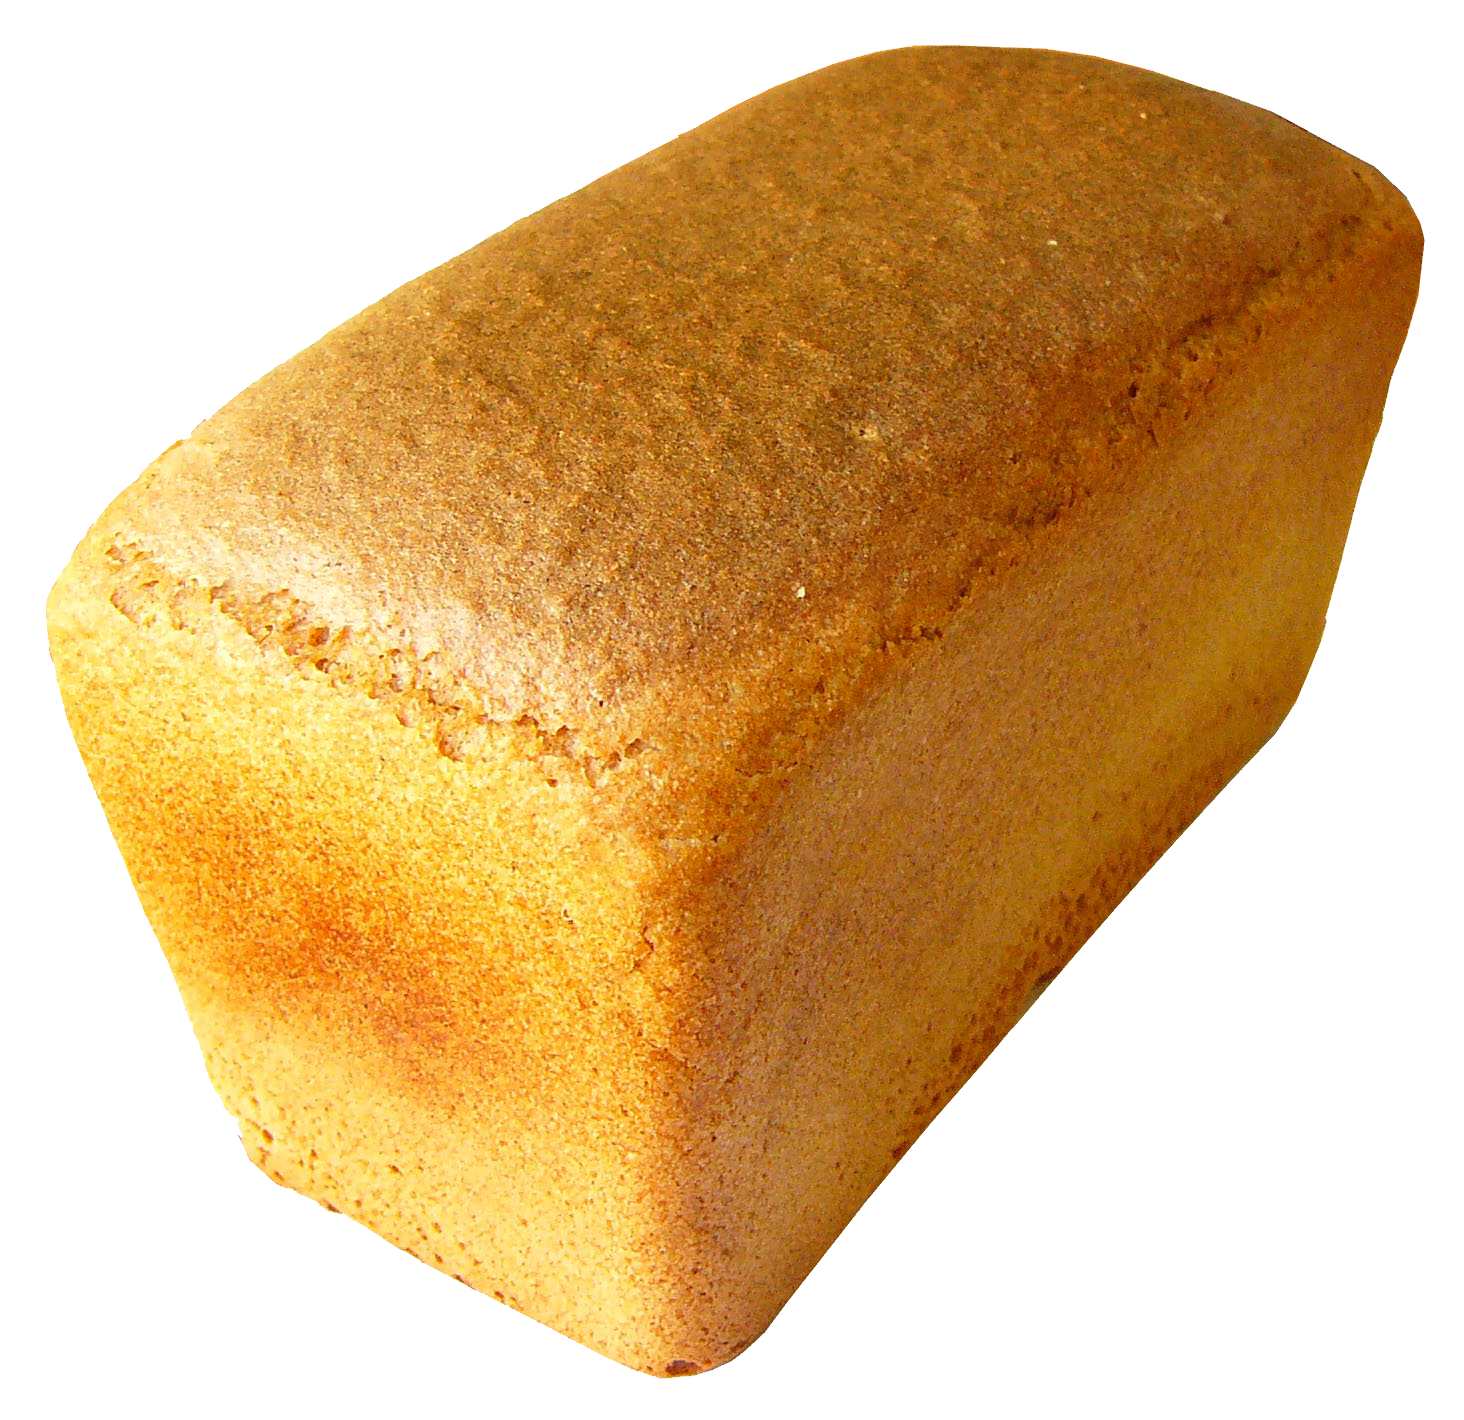 Whute Bread Png Image